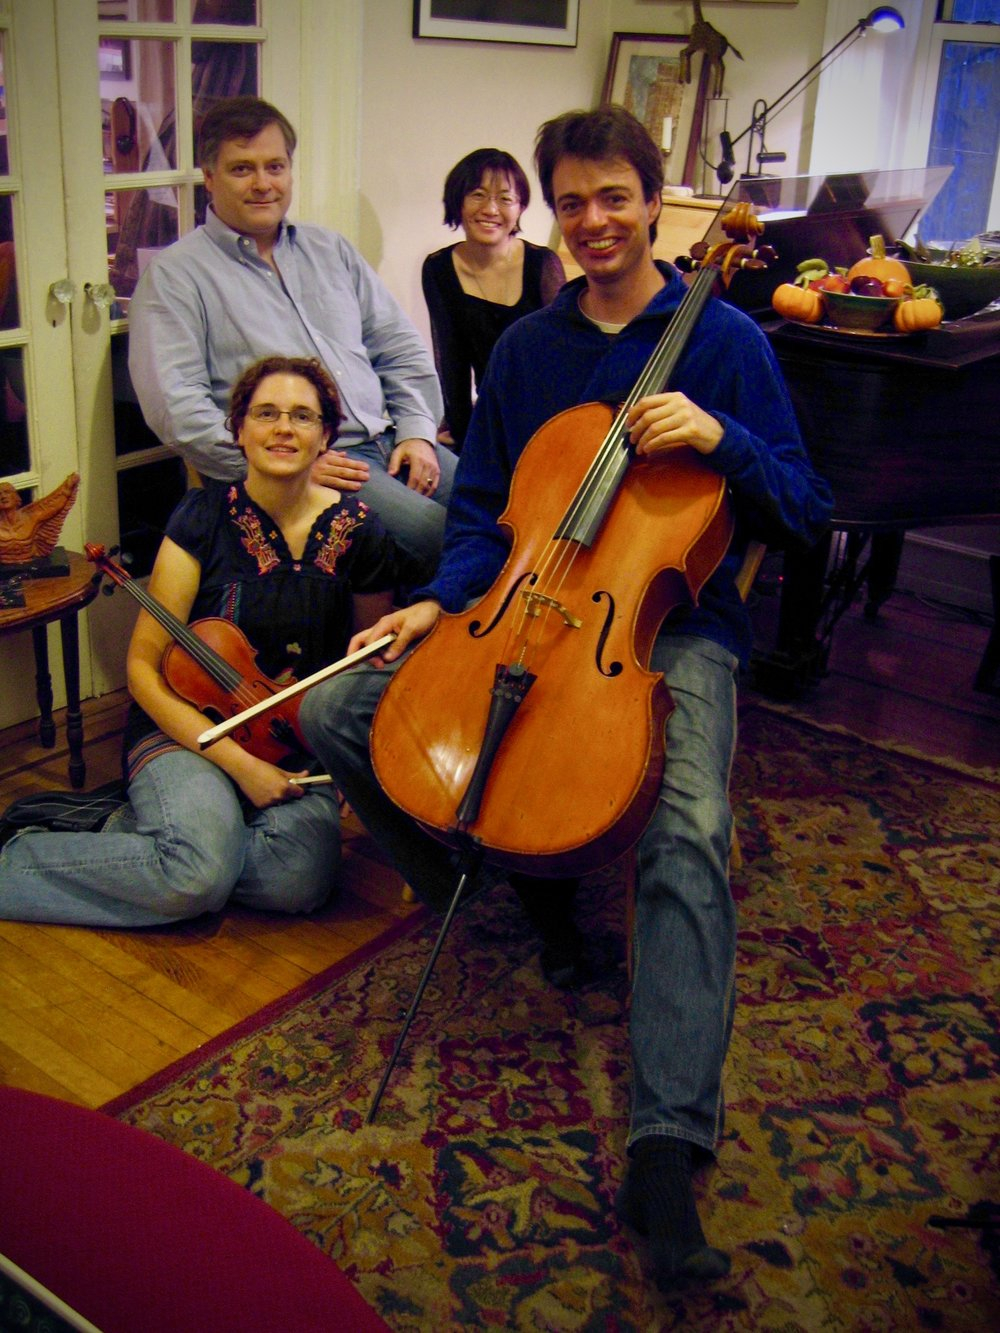 Hagen and the Amelia Trio on 20 October 2007 in his New York City apartment.